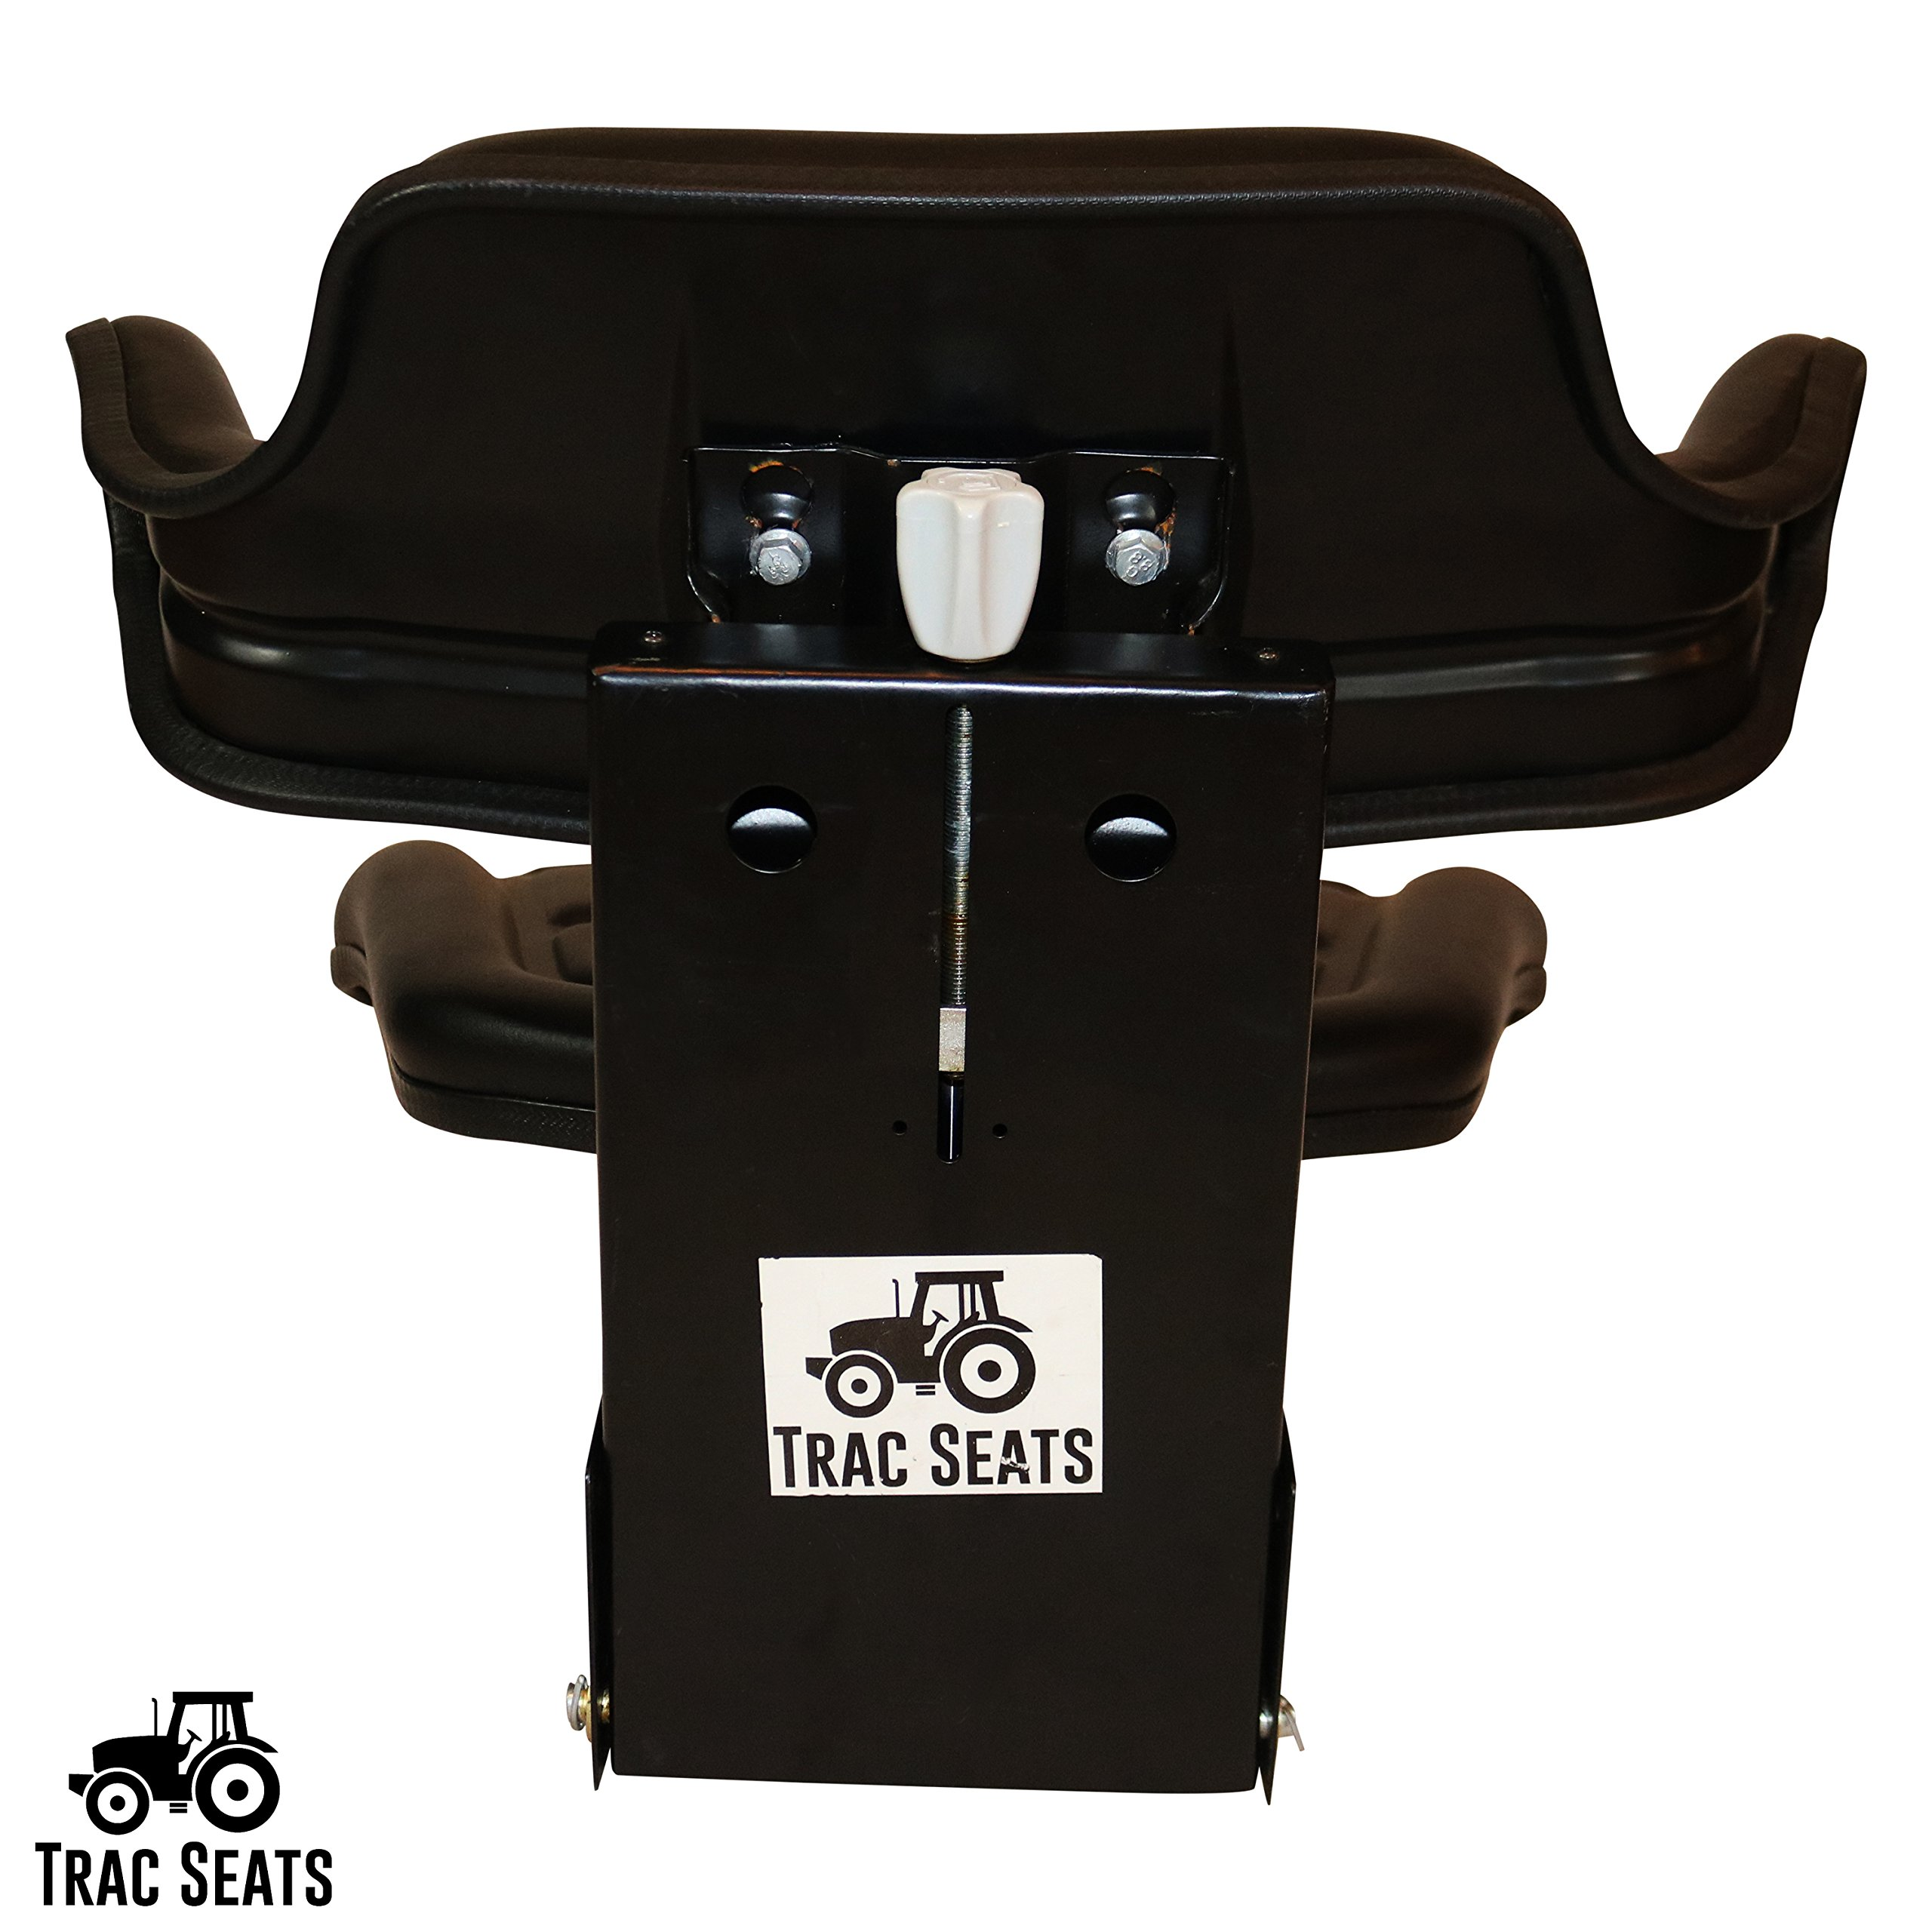 Black Waffle Style TRAC SEATS Brand Tractor Suspension SEAT with TILT FITS Massey Ferguson 231 234 255 265 270 274 275 285 (Fast Ship - Delivers in 1-4 Business Days)